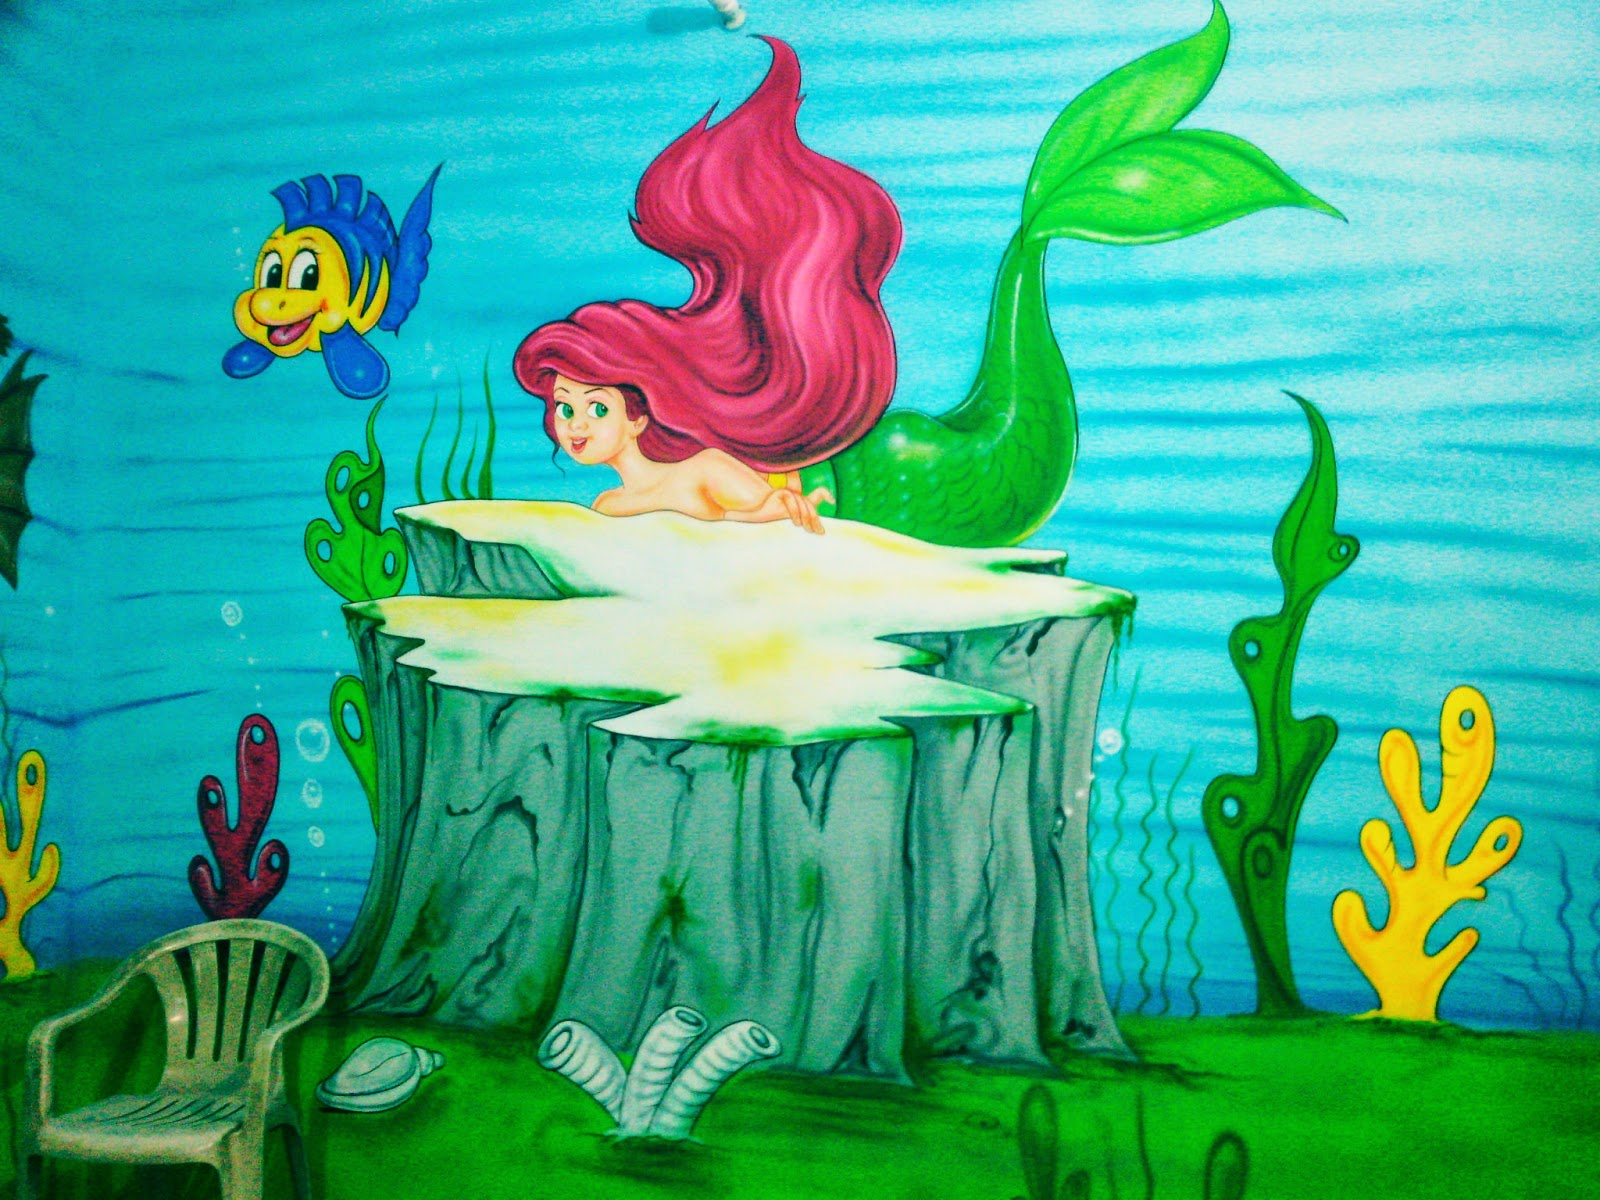 play school wall painting 3d cartoon theme painting ceiling painting kids room painting 3d wall painting - Cartoon Painting For Kids